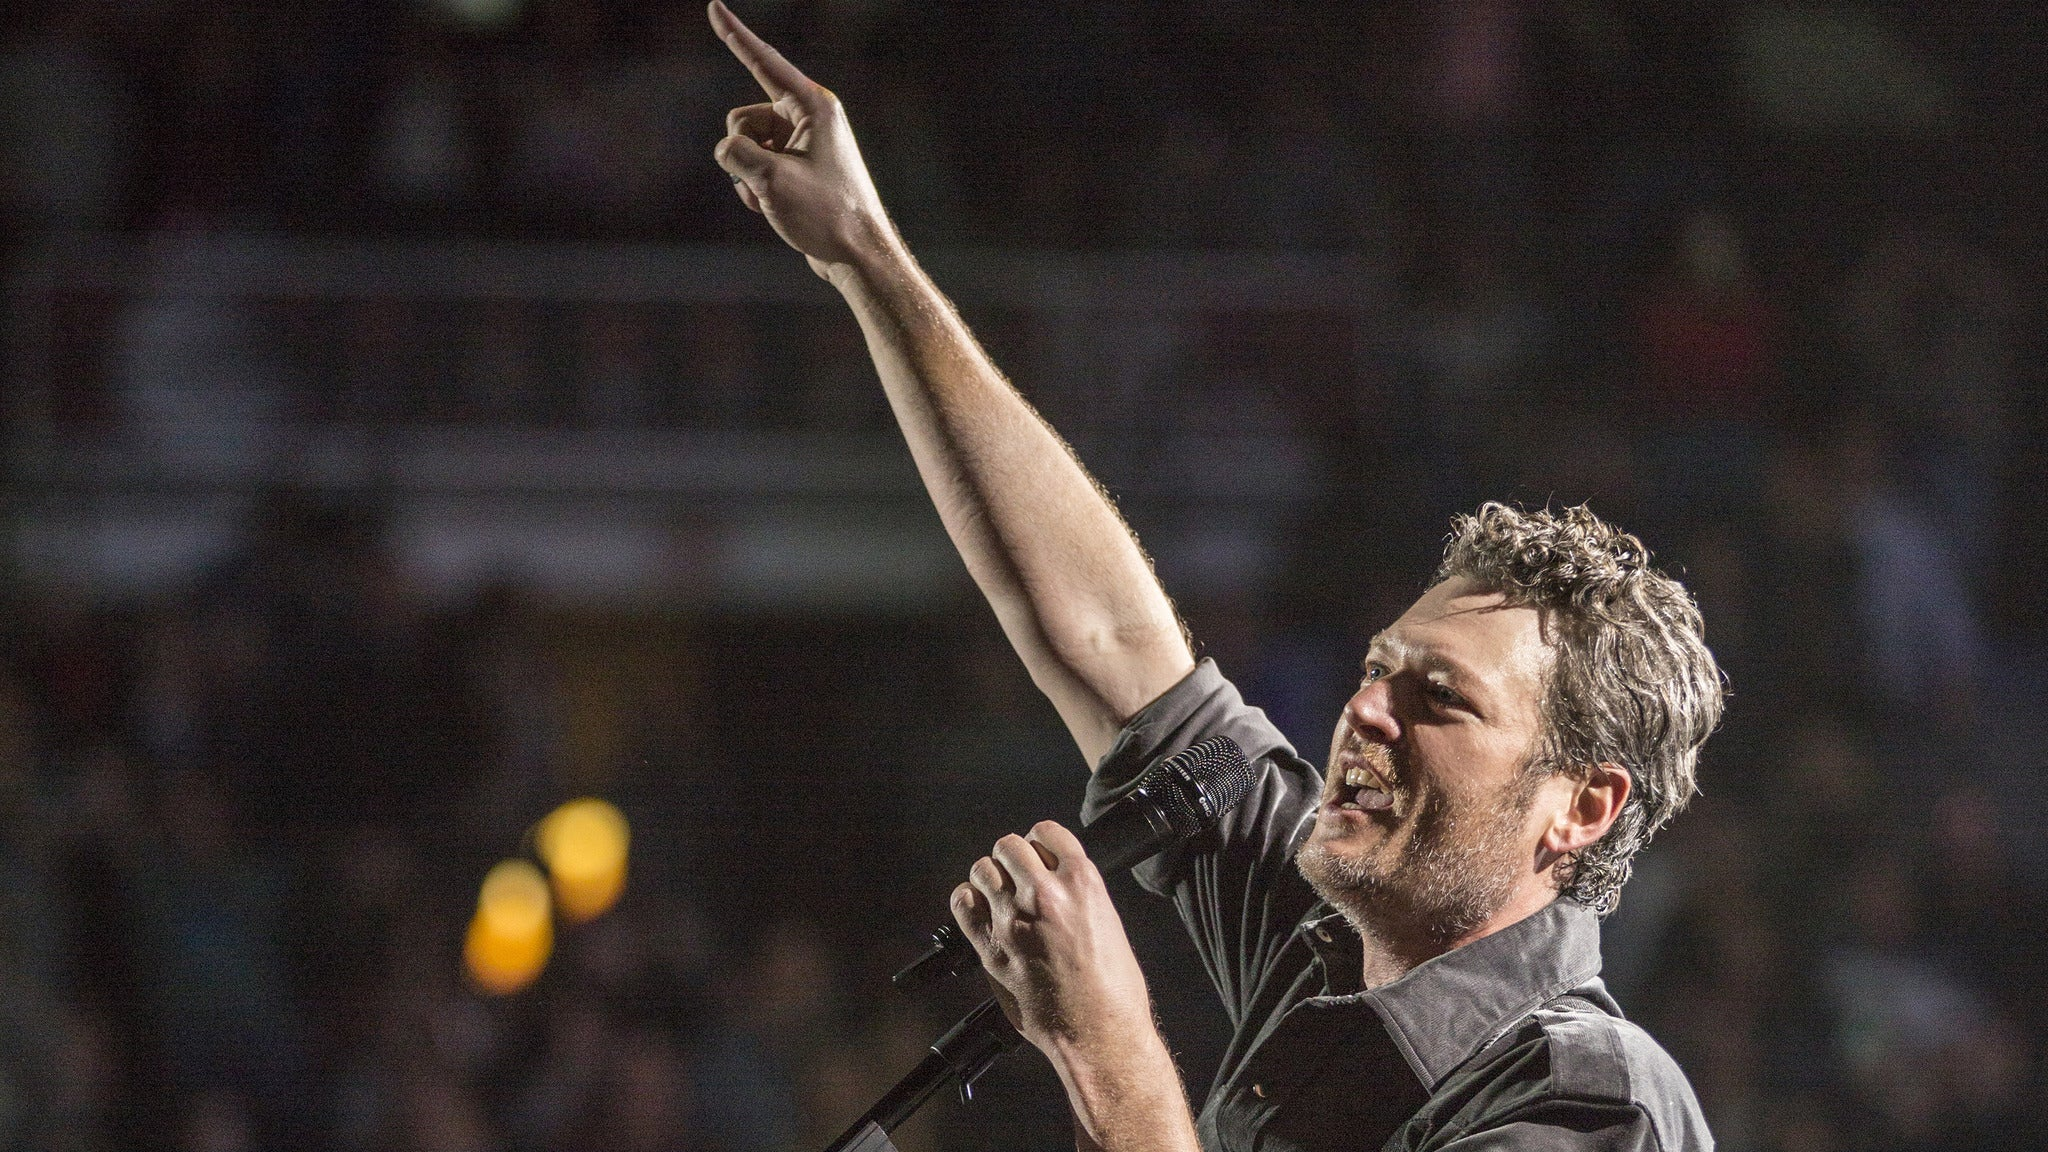 Blake Shelton at Salinas Sports Complex